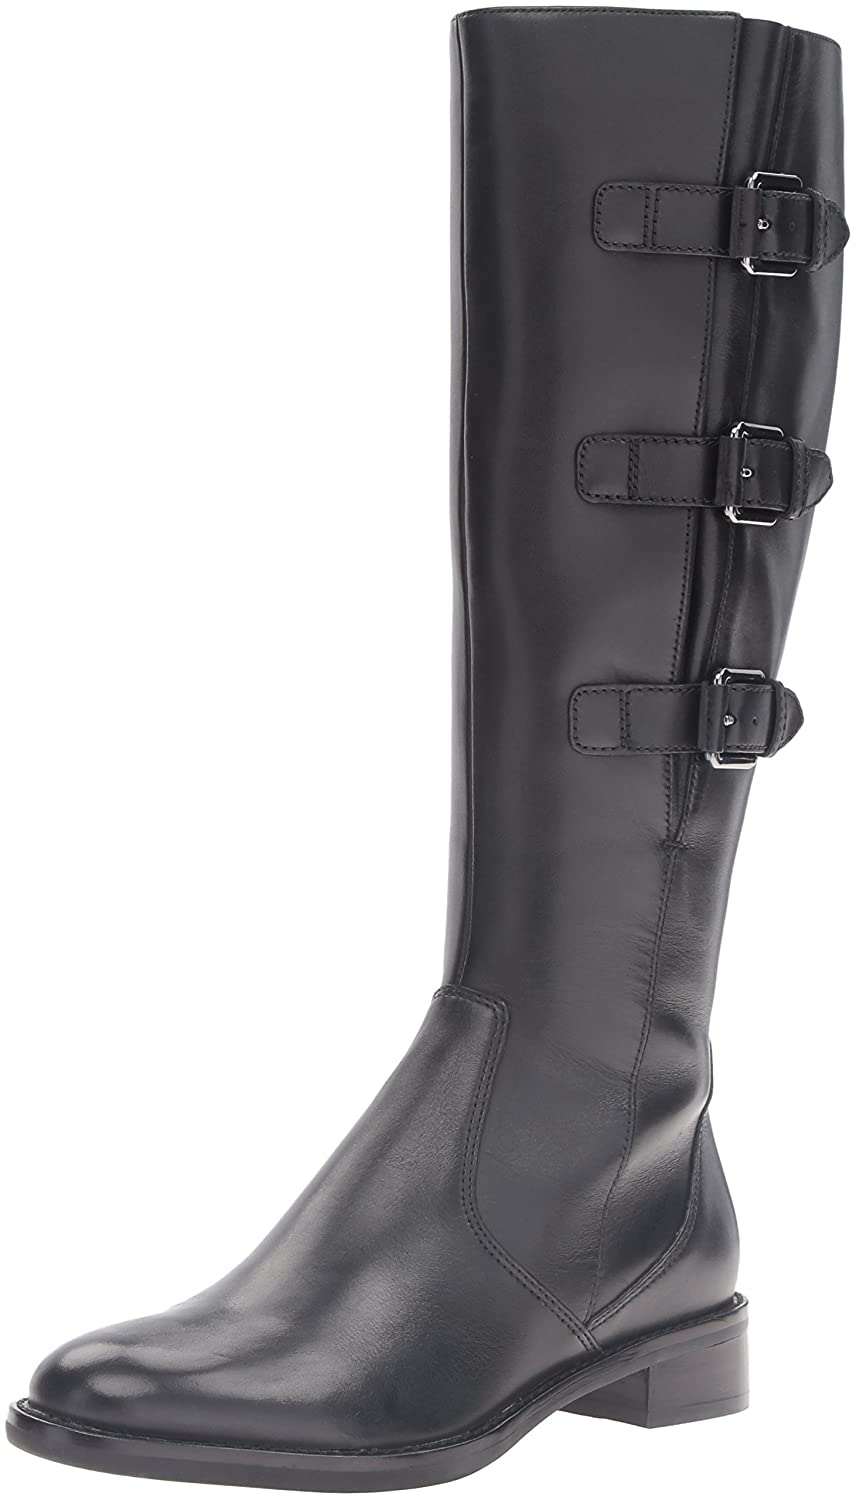 ECCO Women's Hobart Riding Boot B01A9JHFKO 35 EU/4-4.5 M US|Black